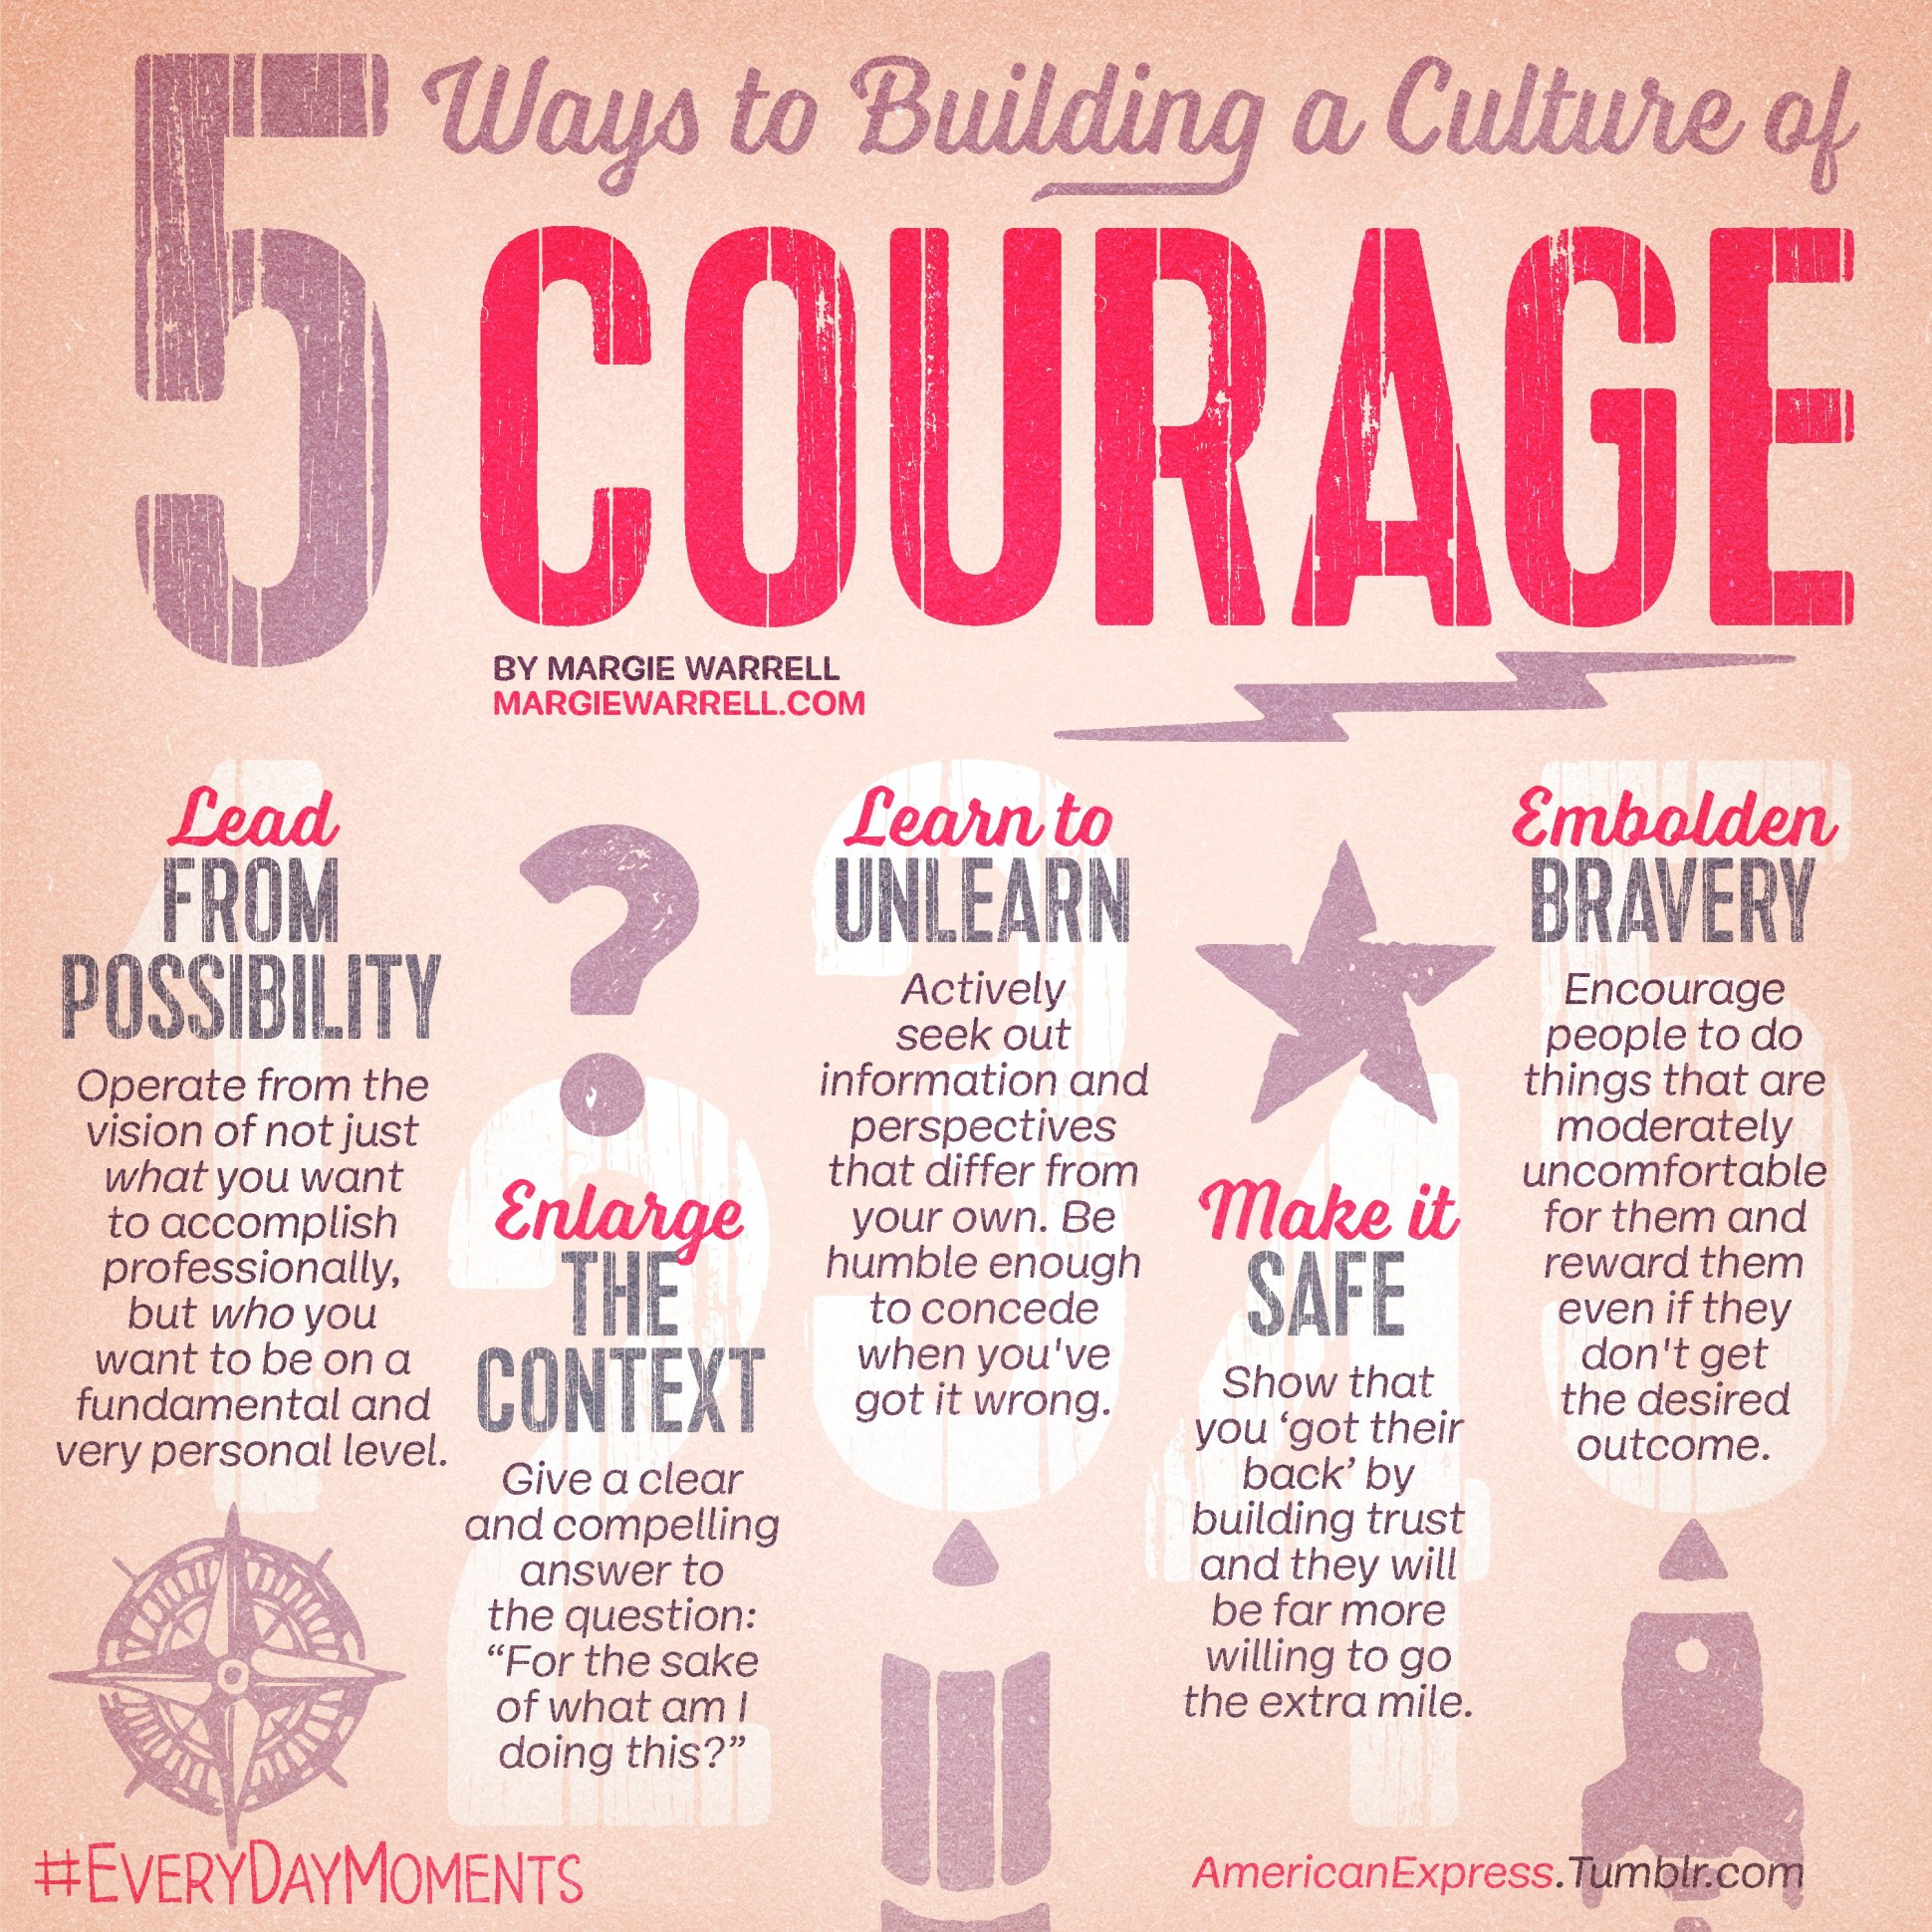 culture of courage creating a culture that breeds bravery  culture of courage creating a culture that breeds bravery margie warrell